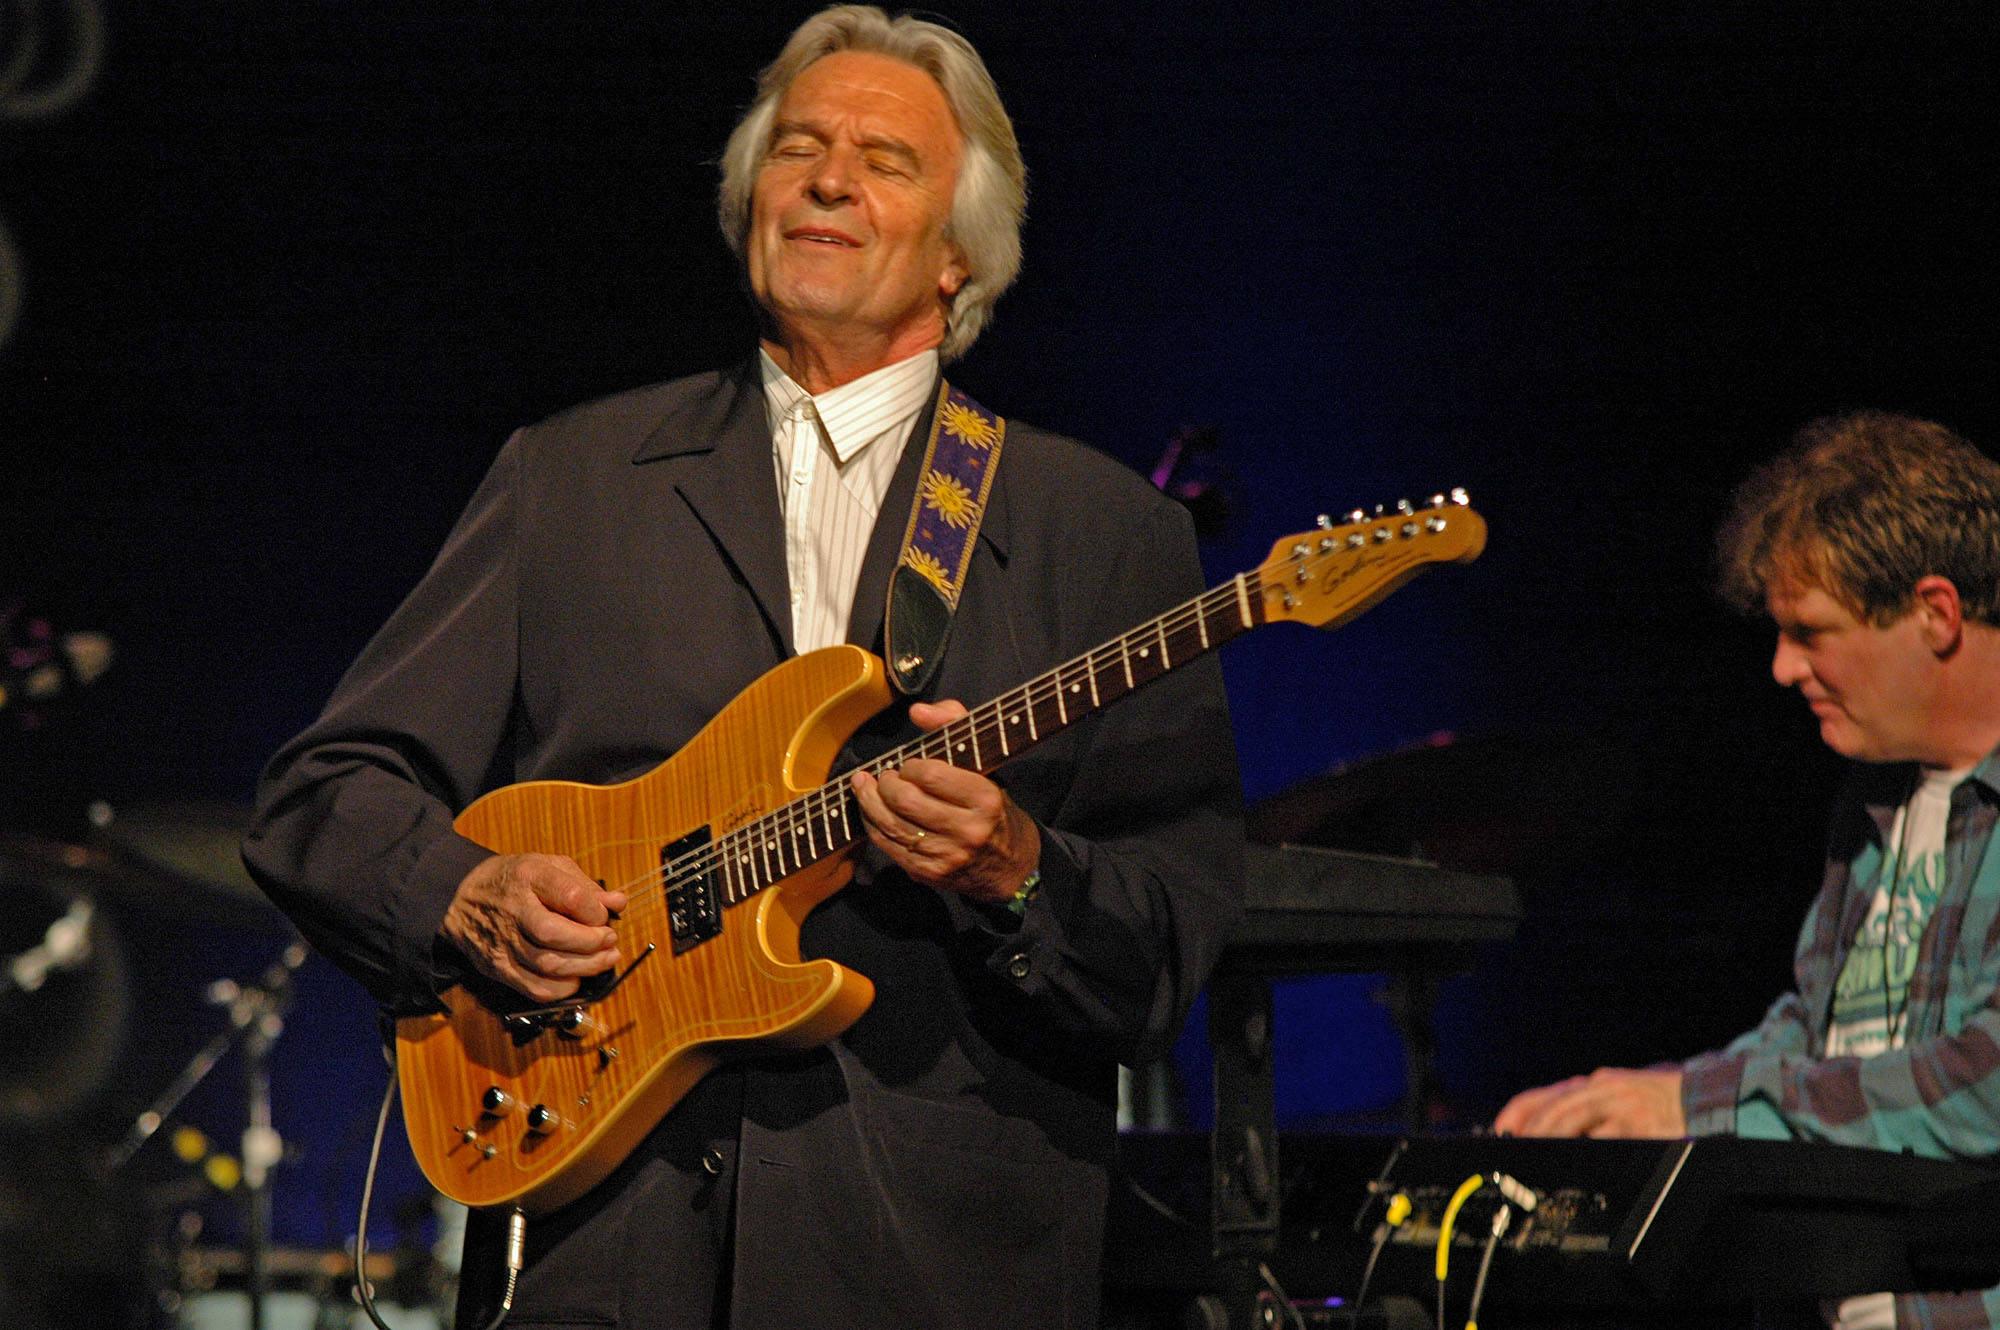 John McLaughlin and Gary Husband, Performing with the 4th Dimension at the 2010 New Universe Music Festival